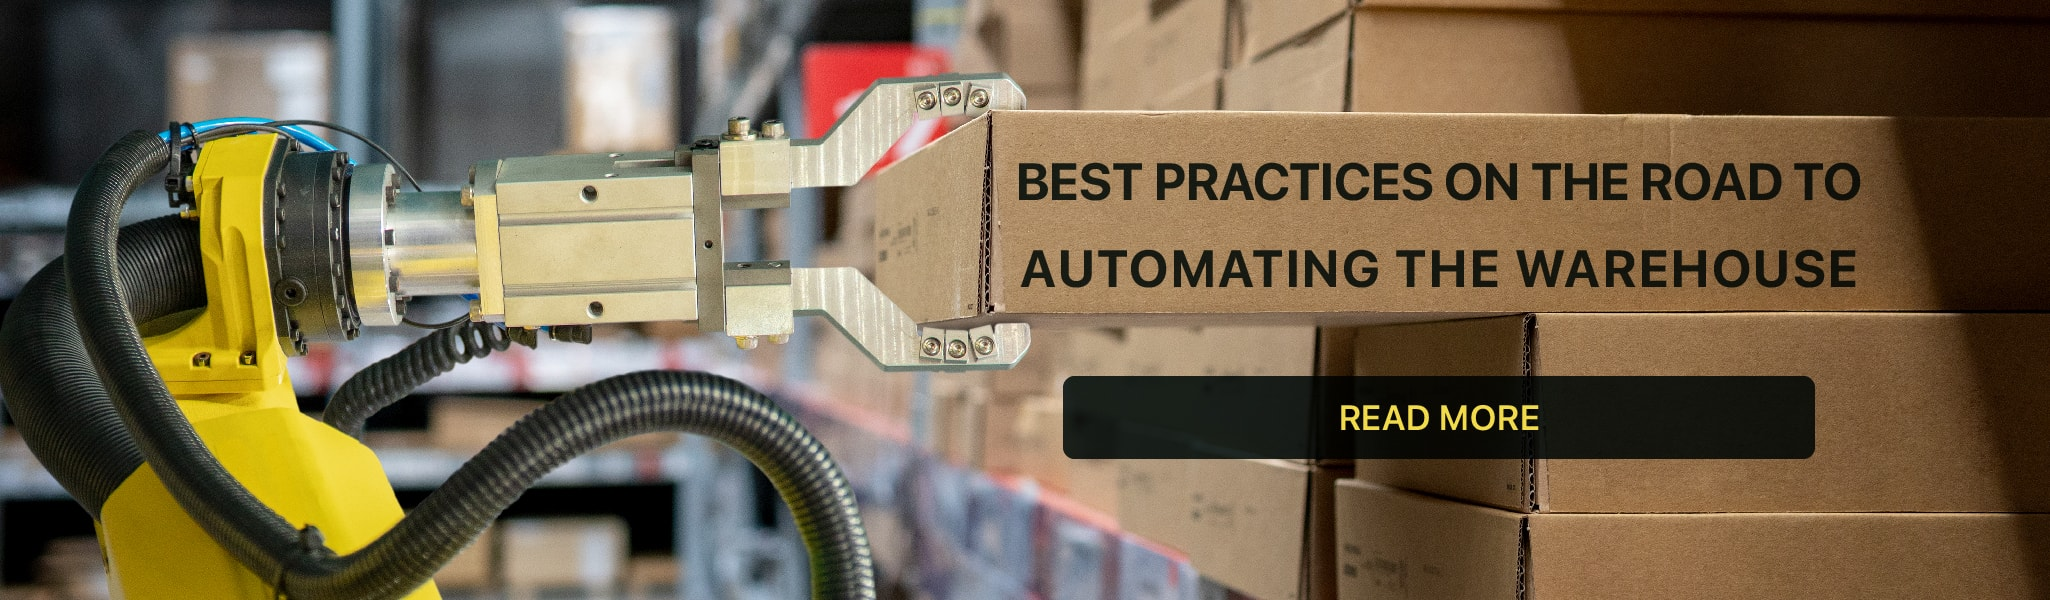 Automating the Warehouse